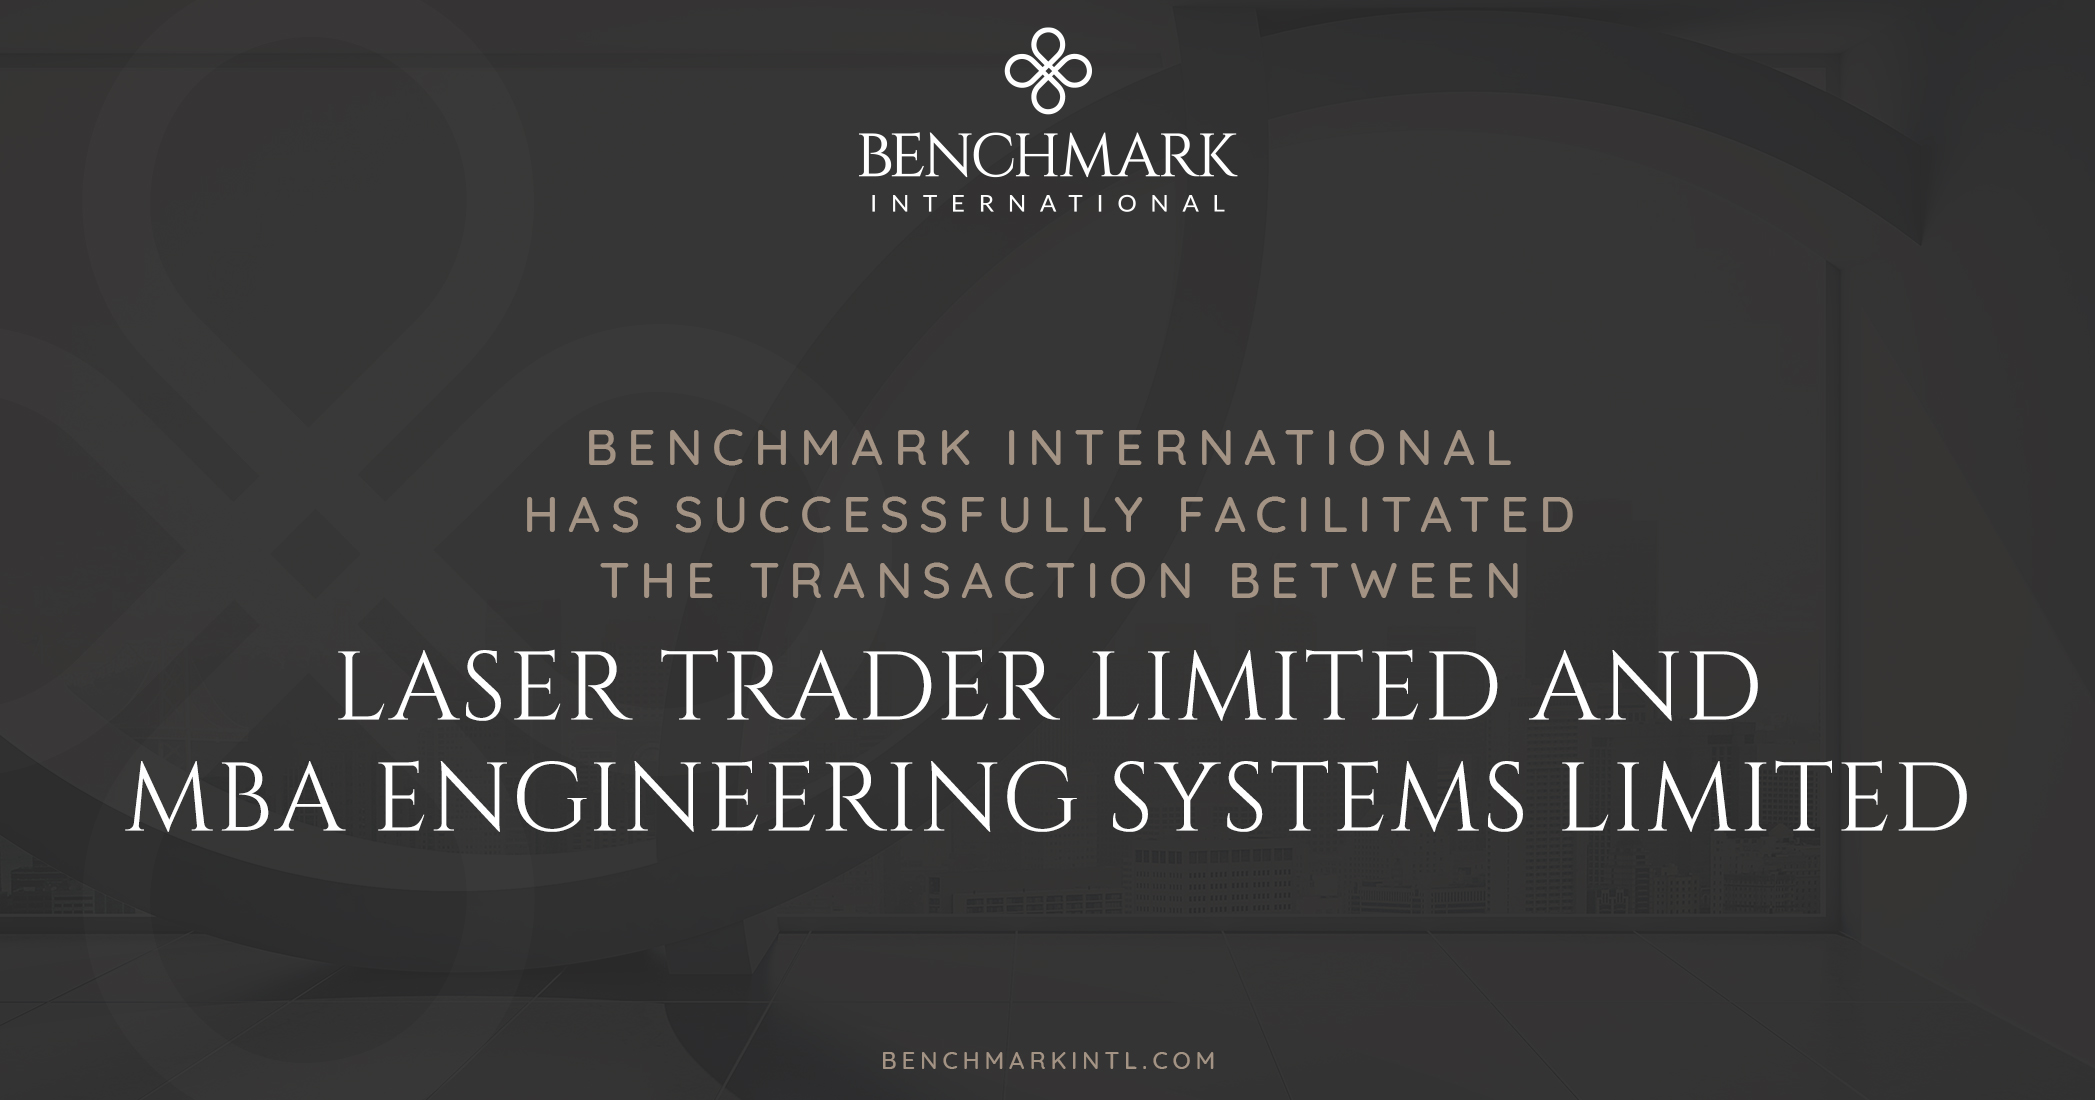 Benchmark International has Successfully Facilitated the Transaction Between Laser Trader Limited and MBA Engineering Systems Limited